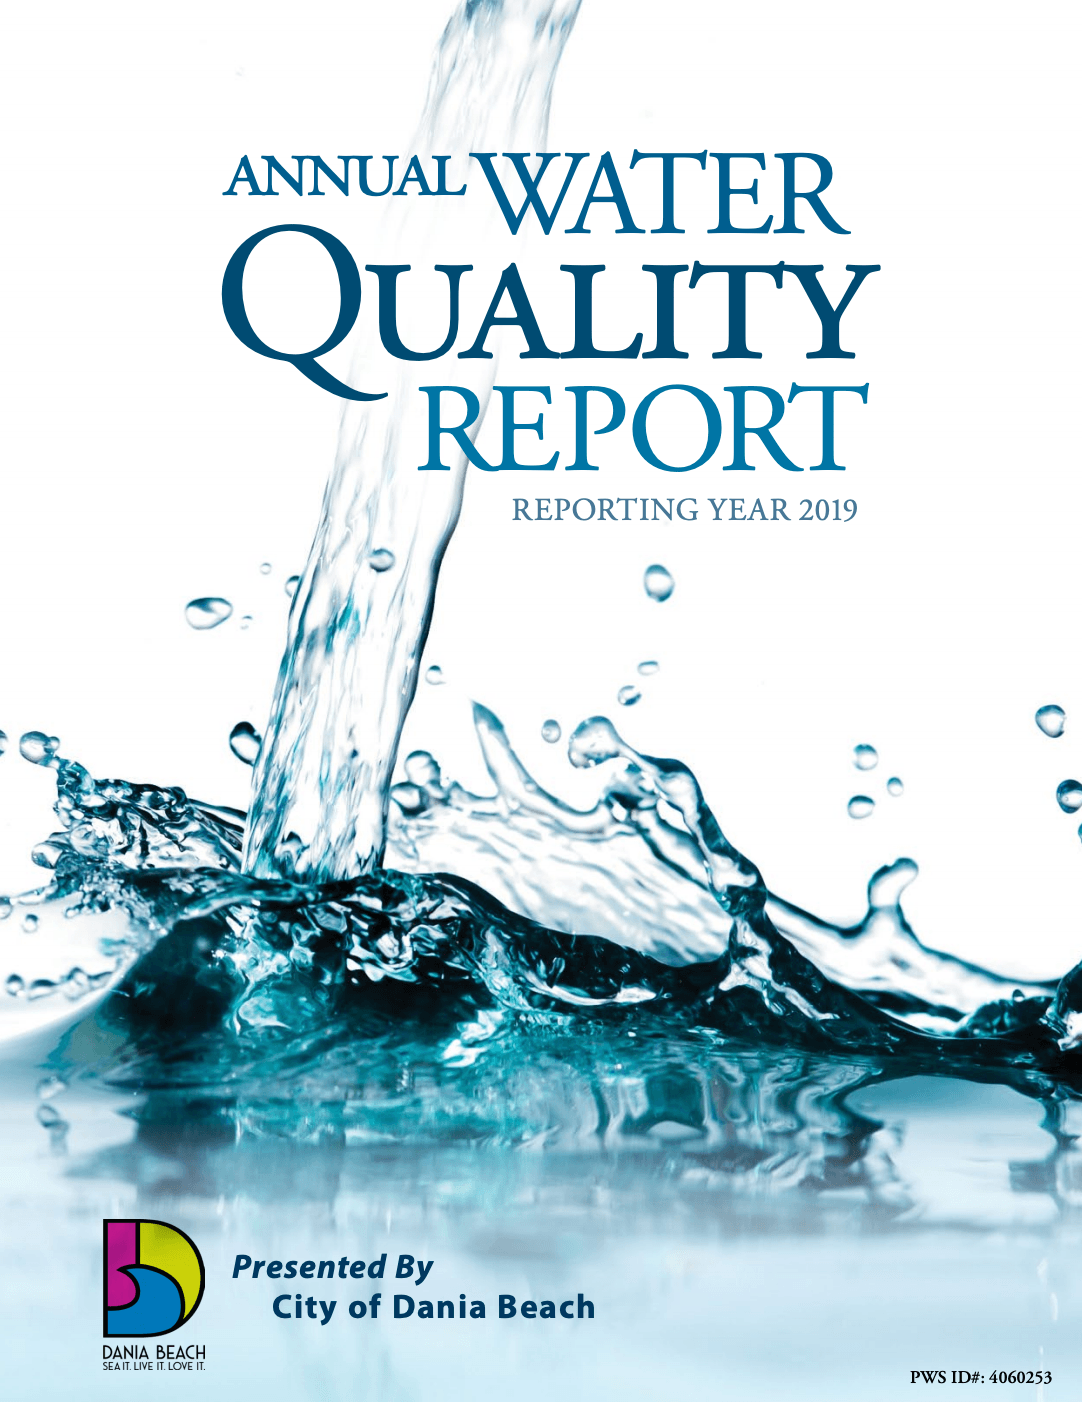 The City of Dania Beach's 2019 Water Quality Report